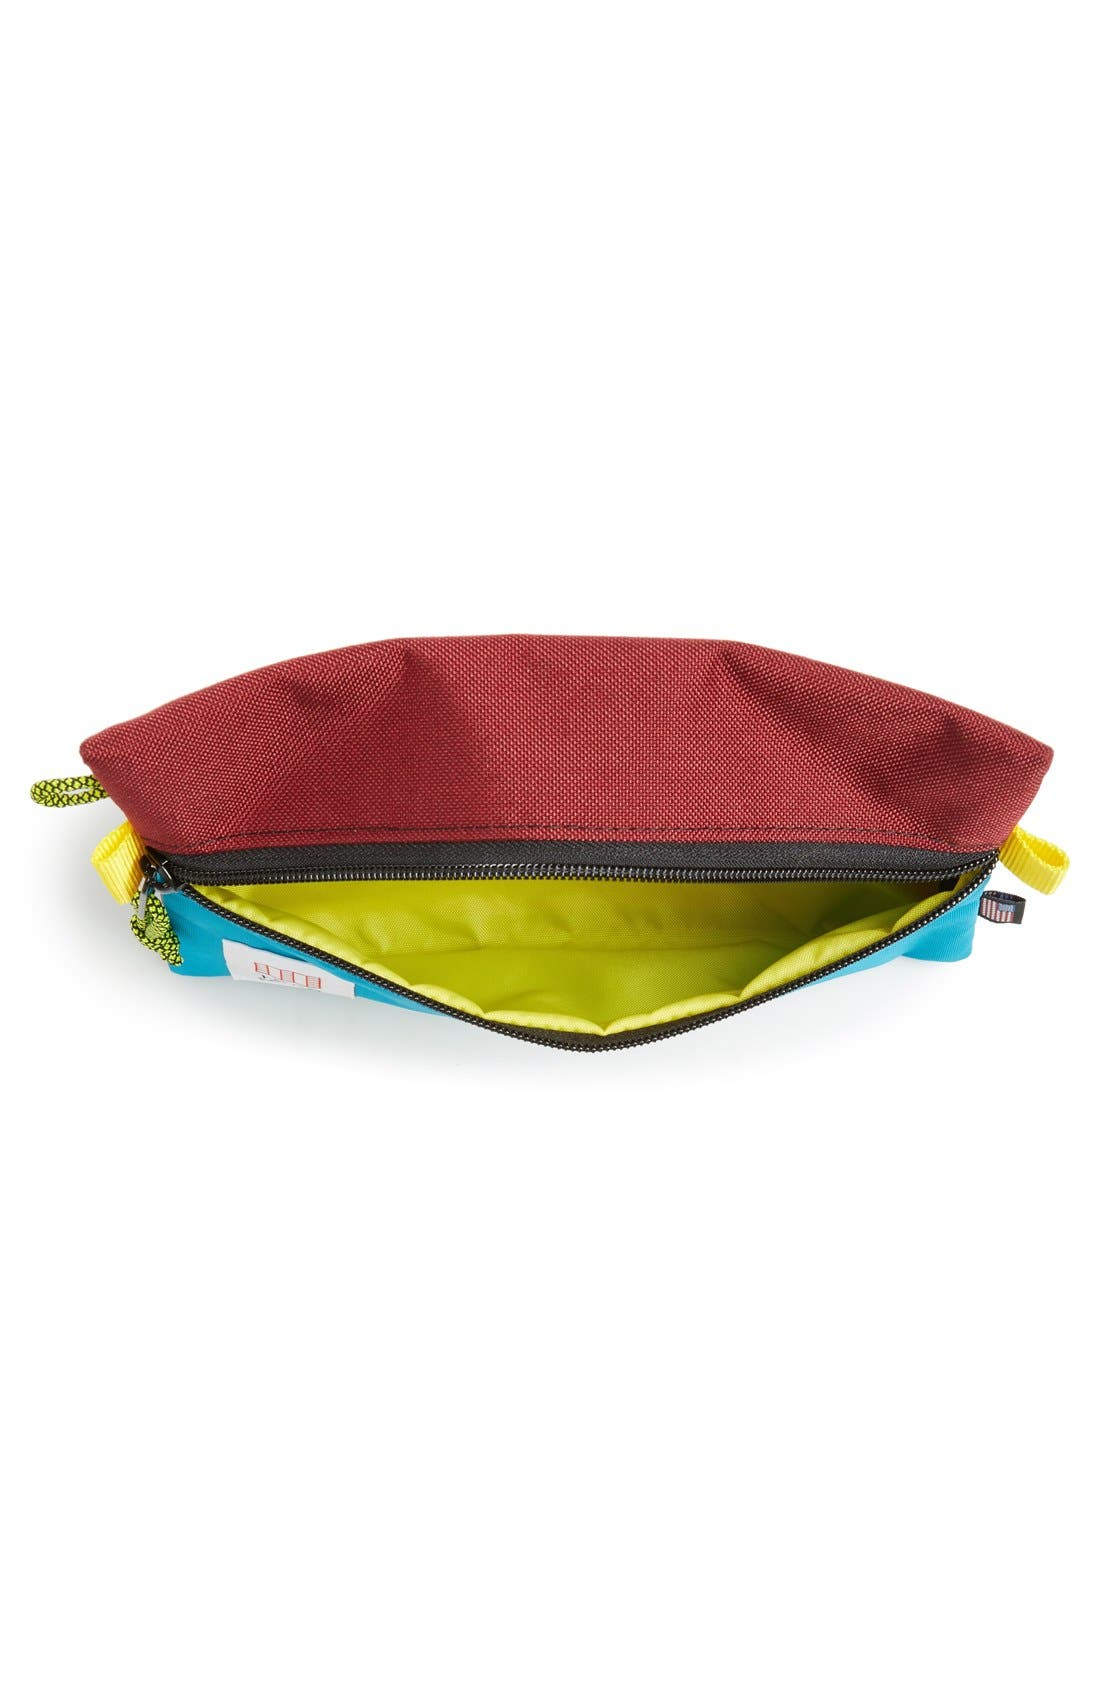 TopoDesigns Accessory Bag,                             Alternate thumbnail 4, color,                             BURGUNDY/ TURQUOISE